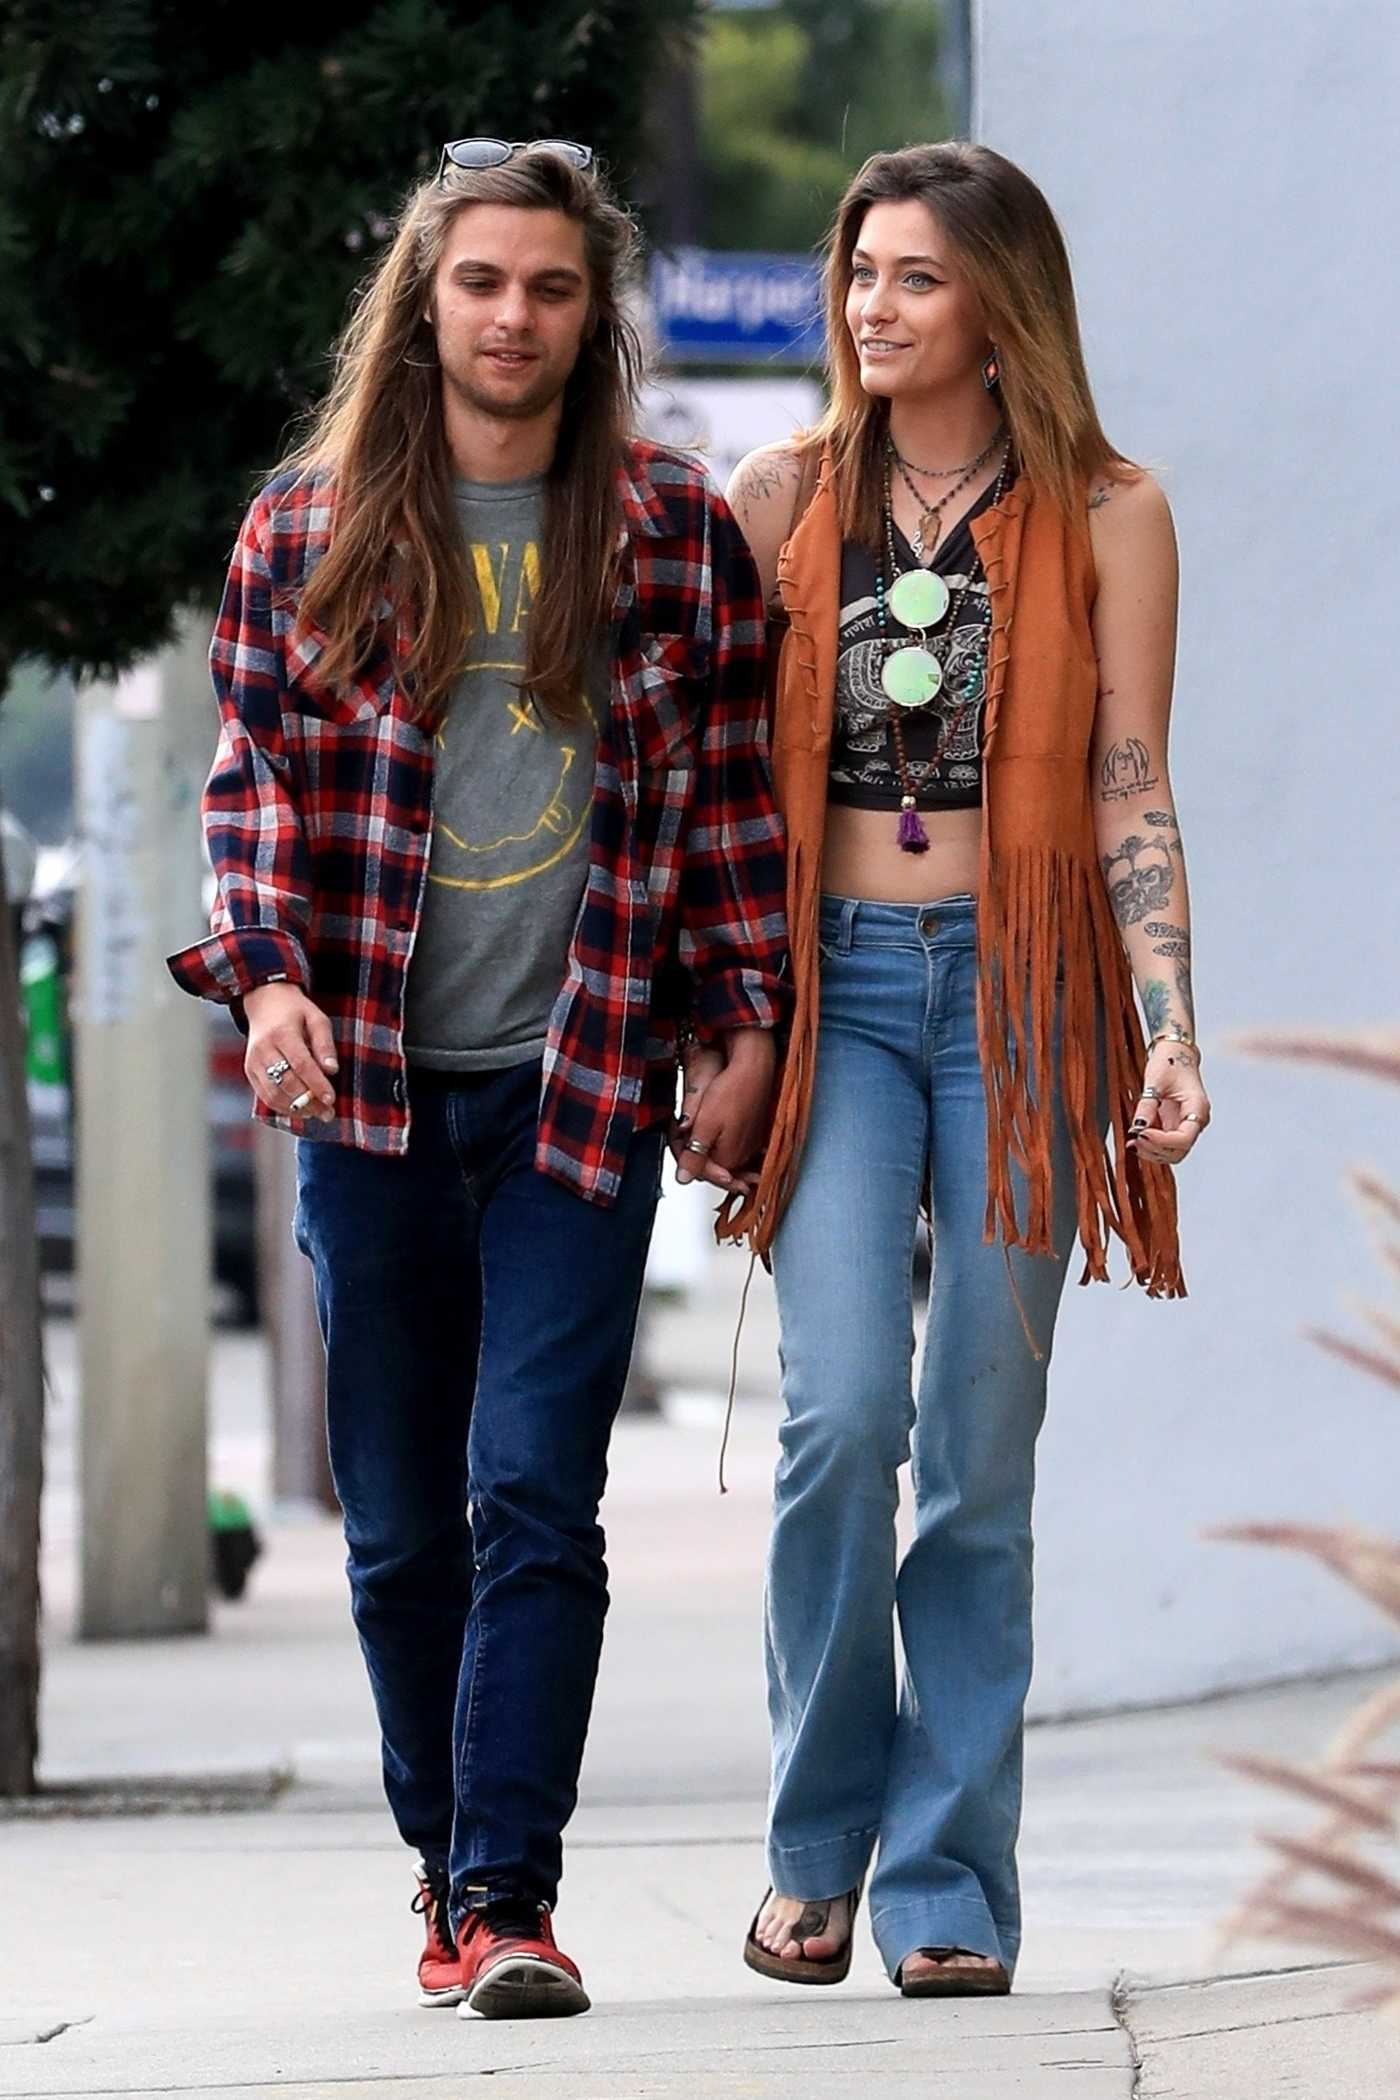 Paris Jackson Was Spotted With A Mystery Man On Melrose Avenue In West Hollywood 01 29 2019 Celebrity Wiki Onceleb Wiki